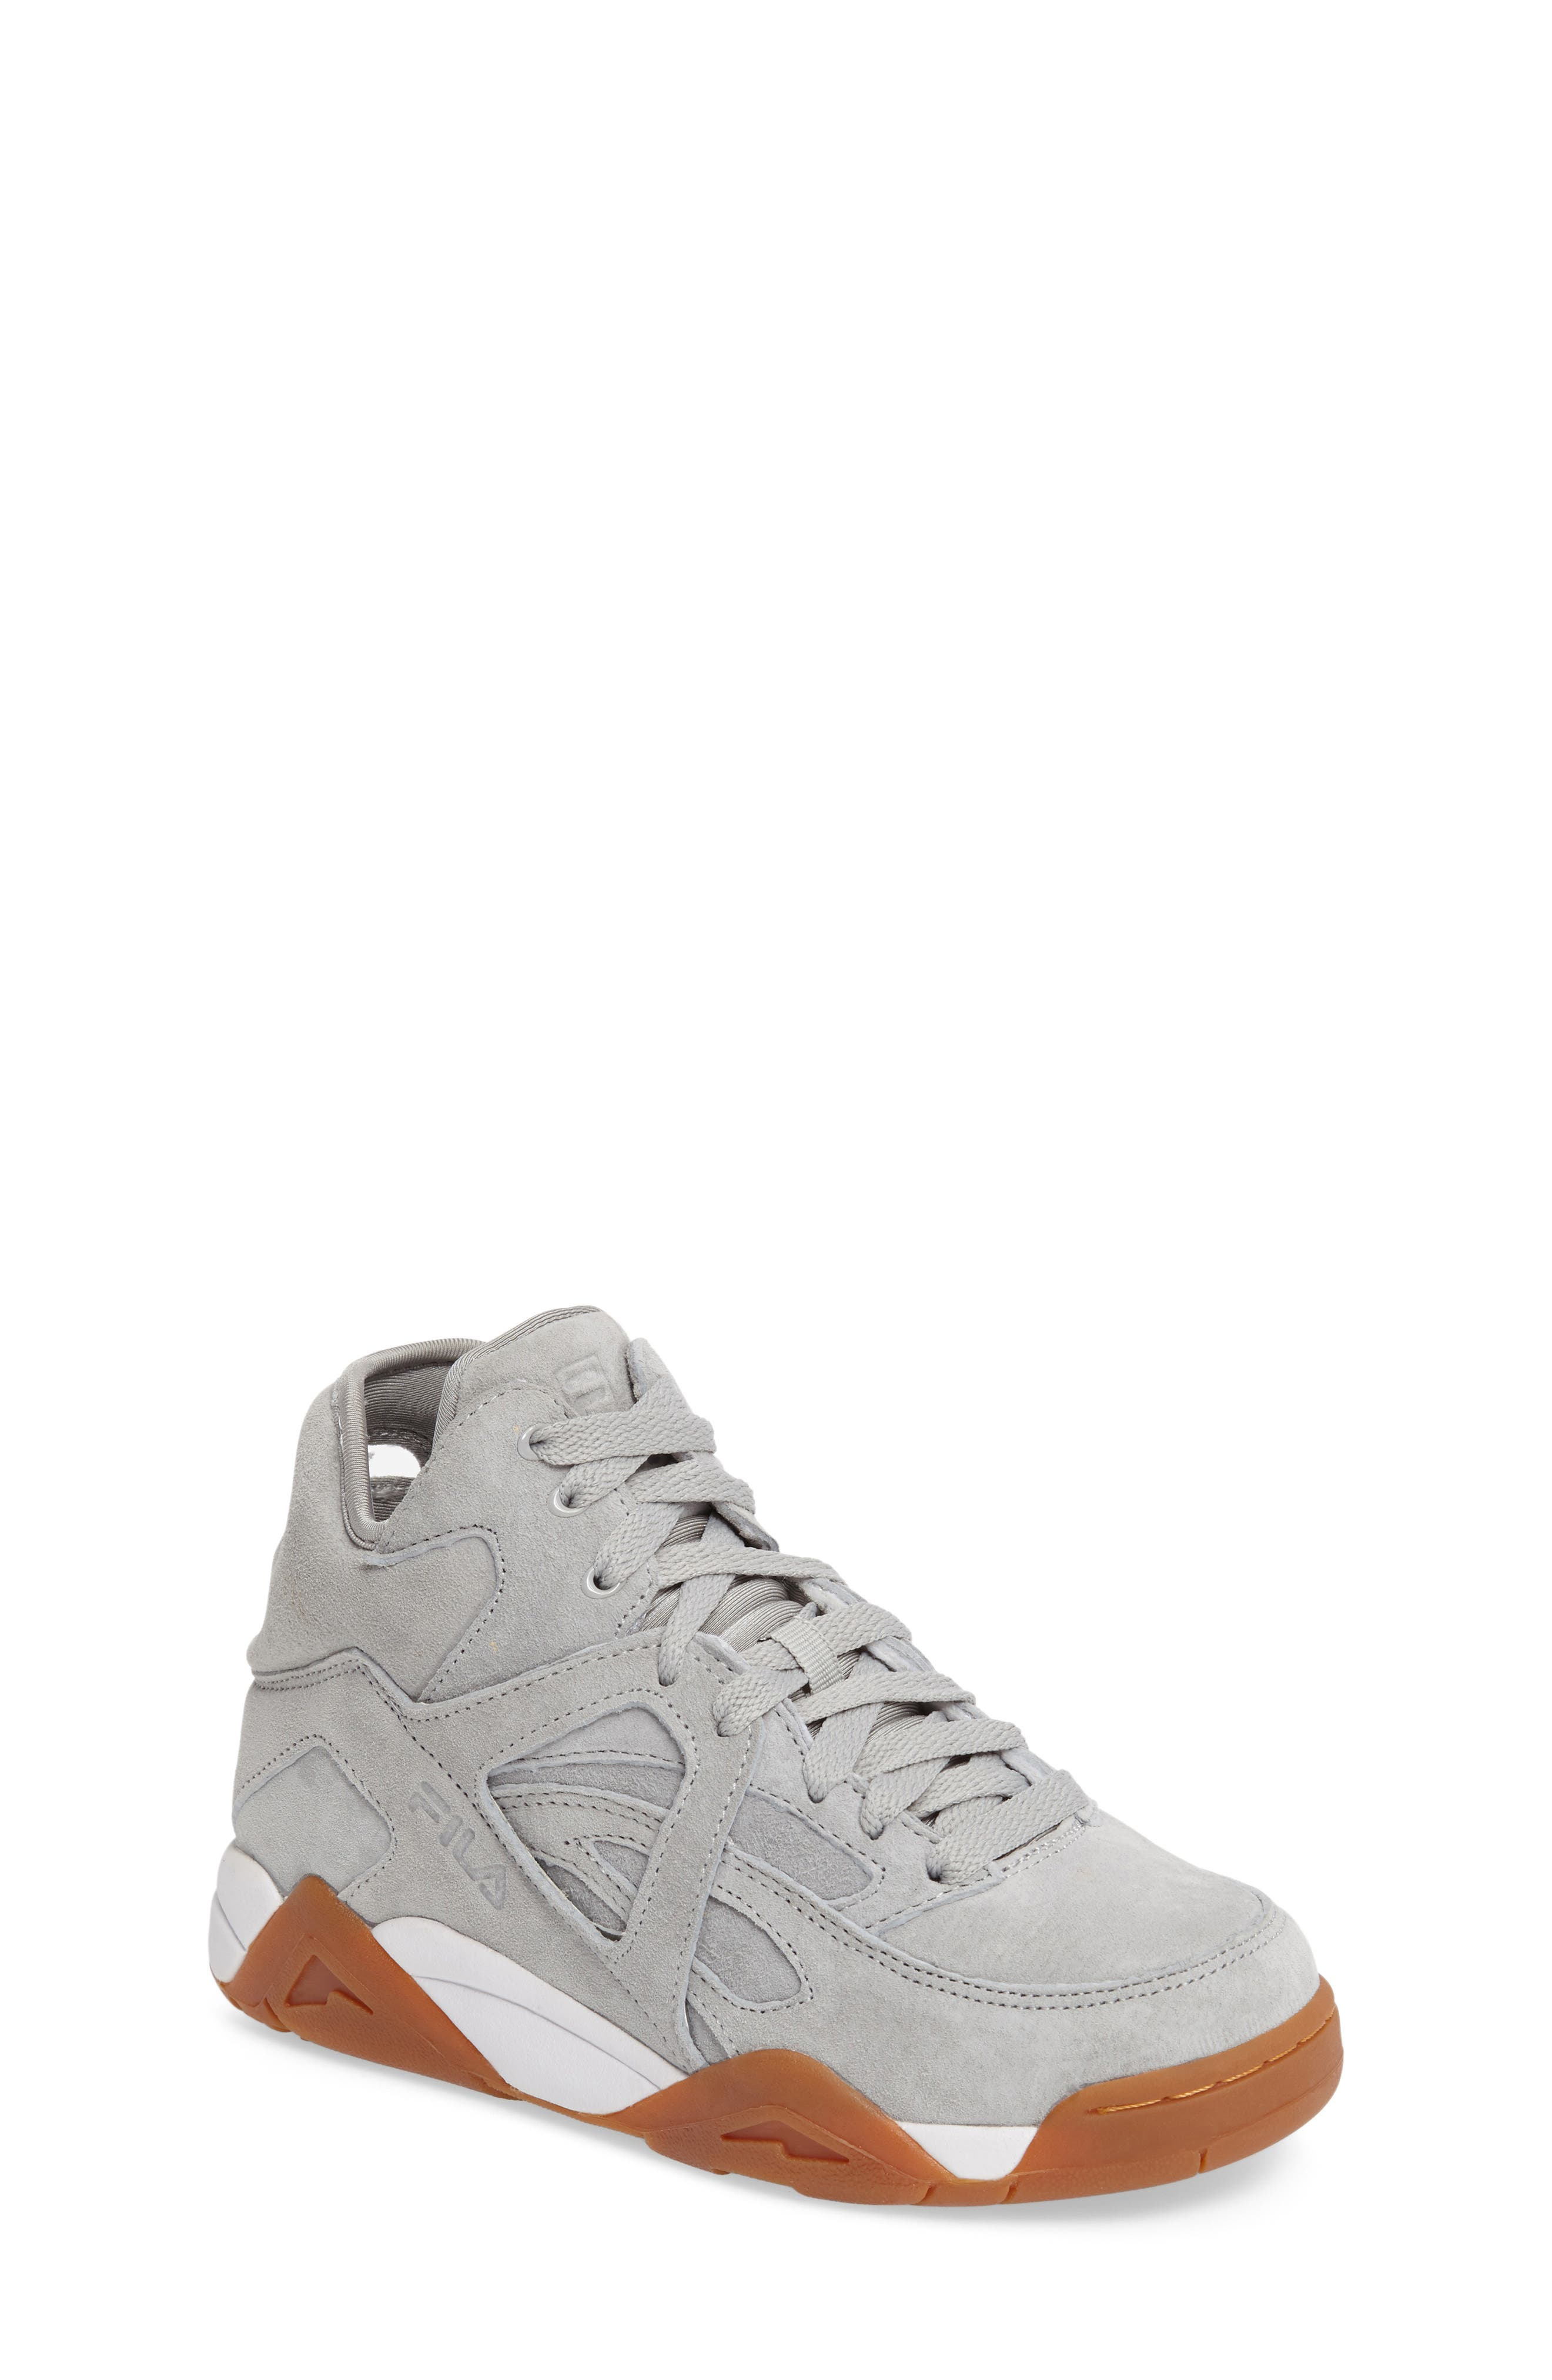 The Cage High Top Sneaker,                         Main,                         color, 072